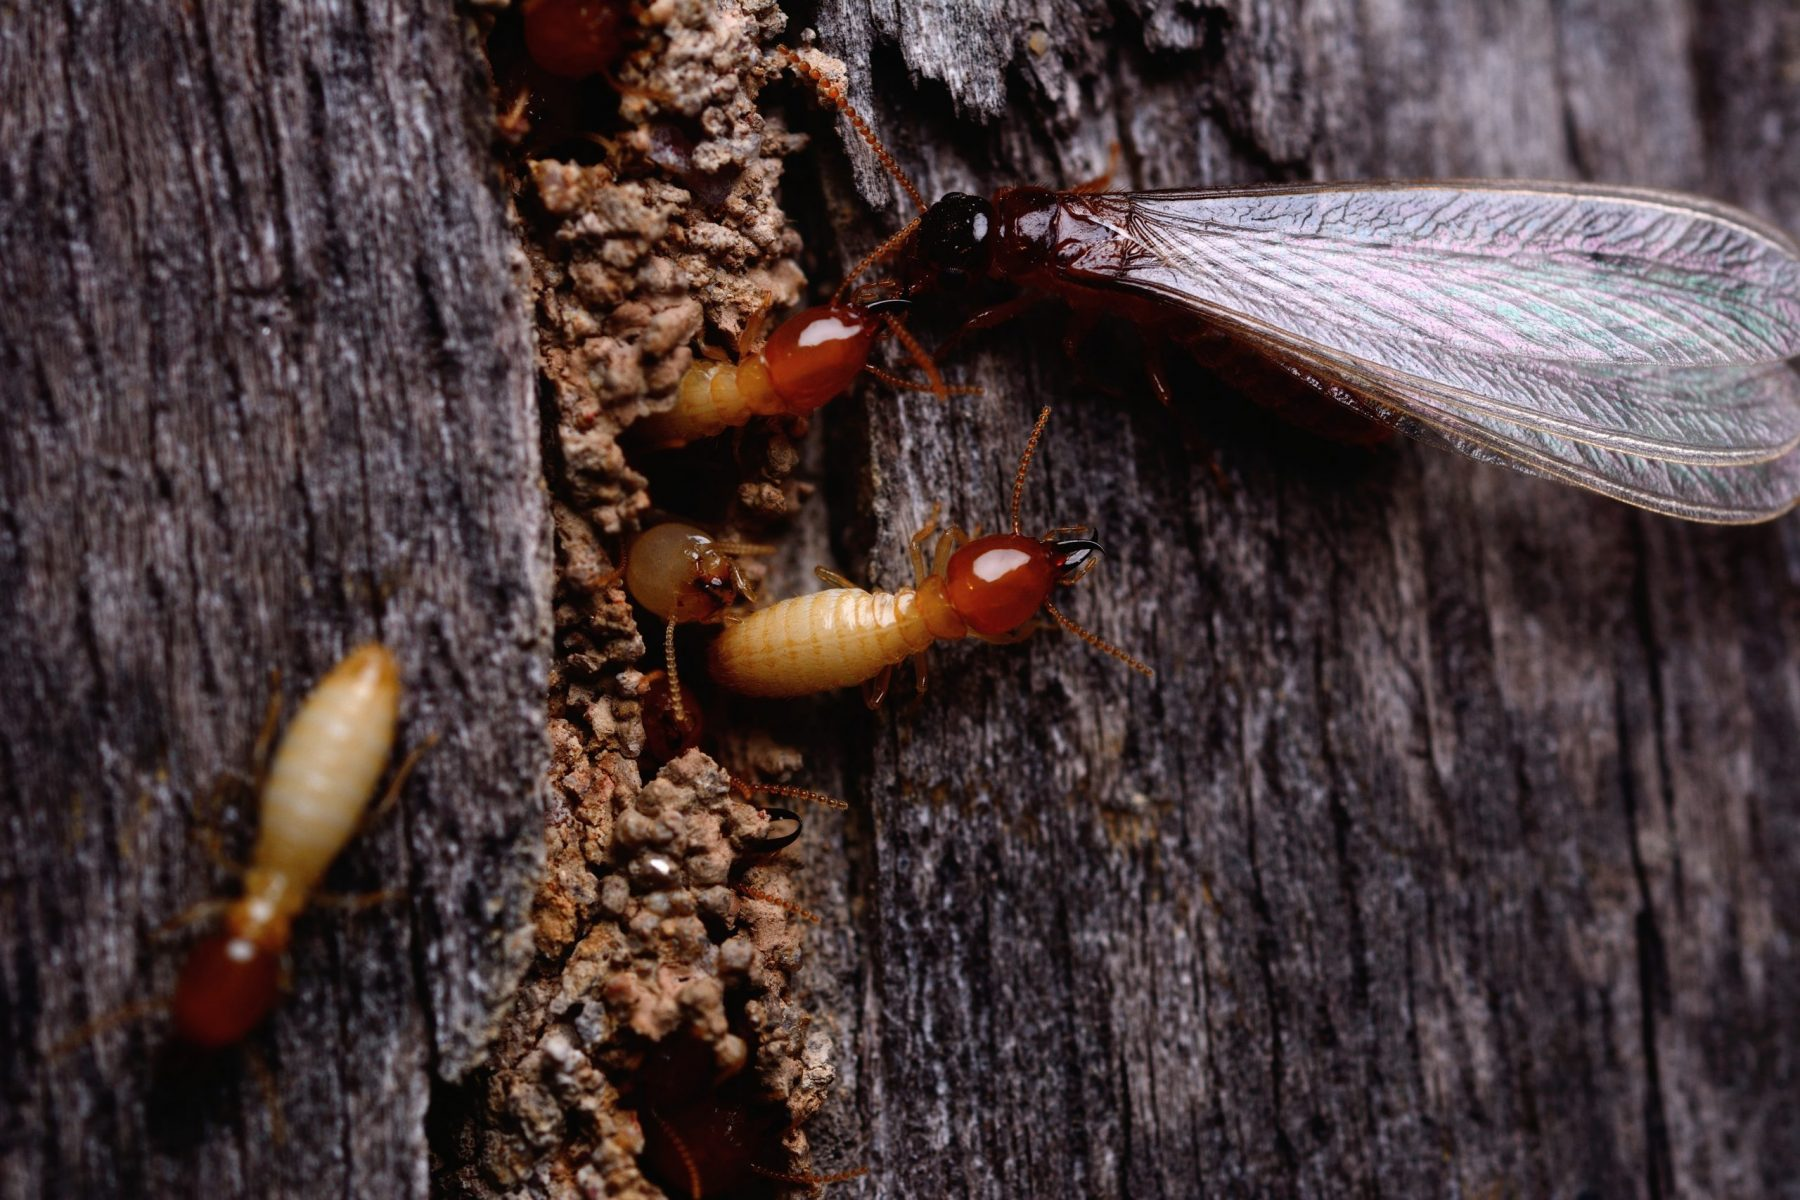 Macro shot of termite insects coming out of wood panel.